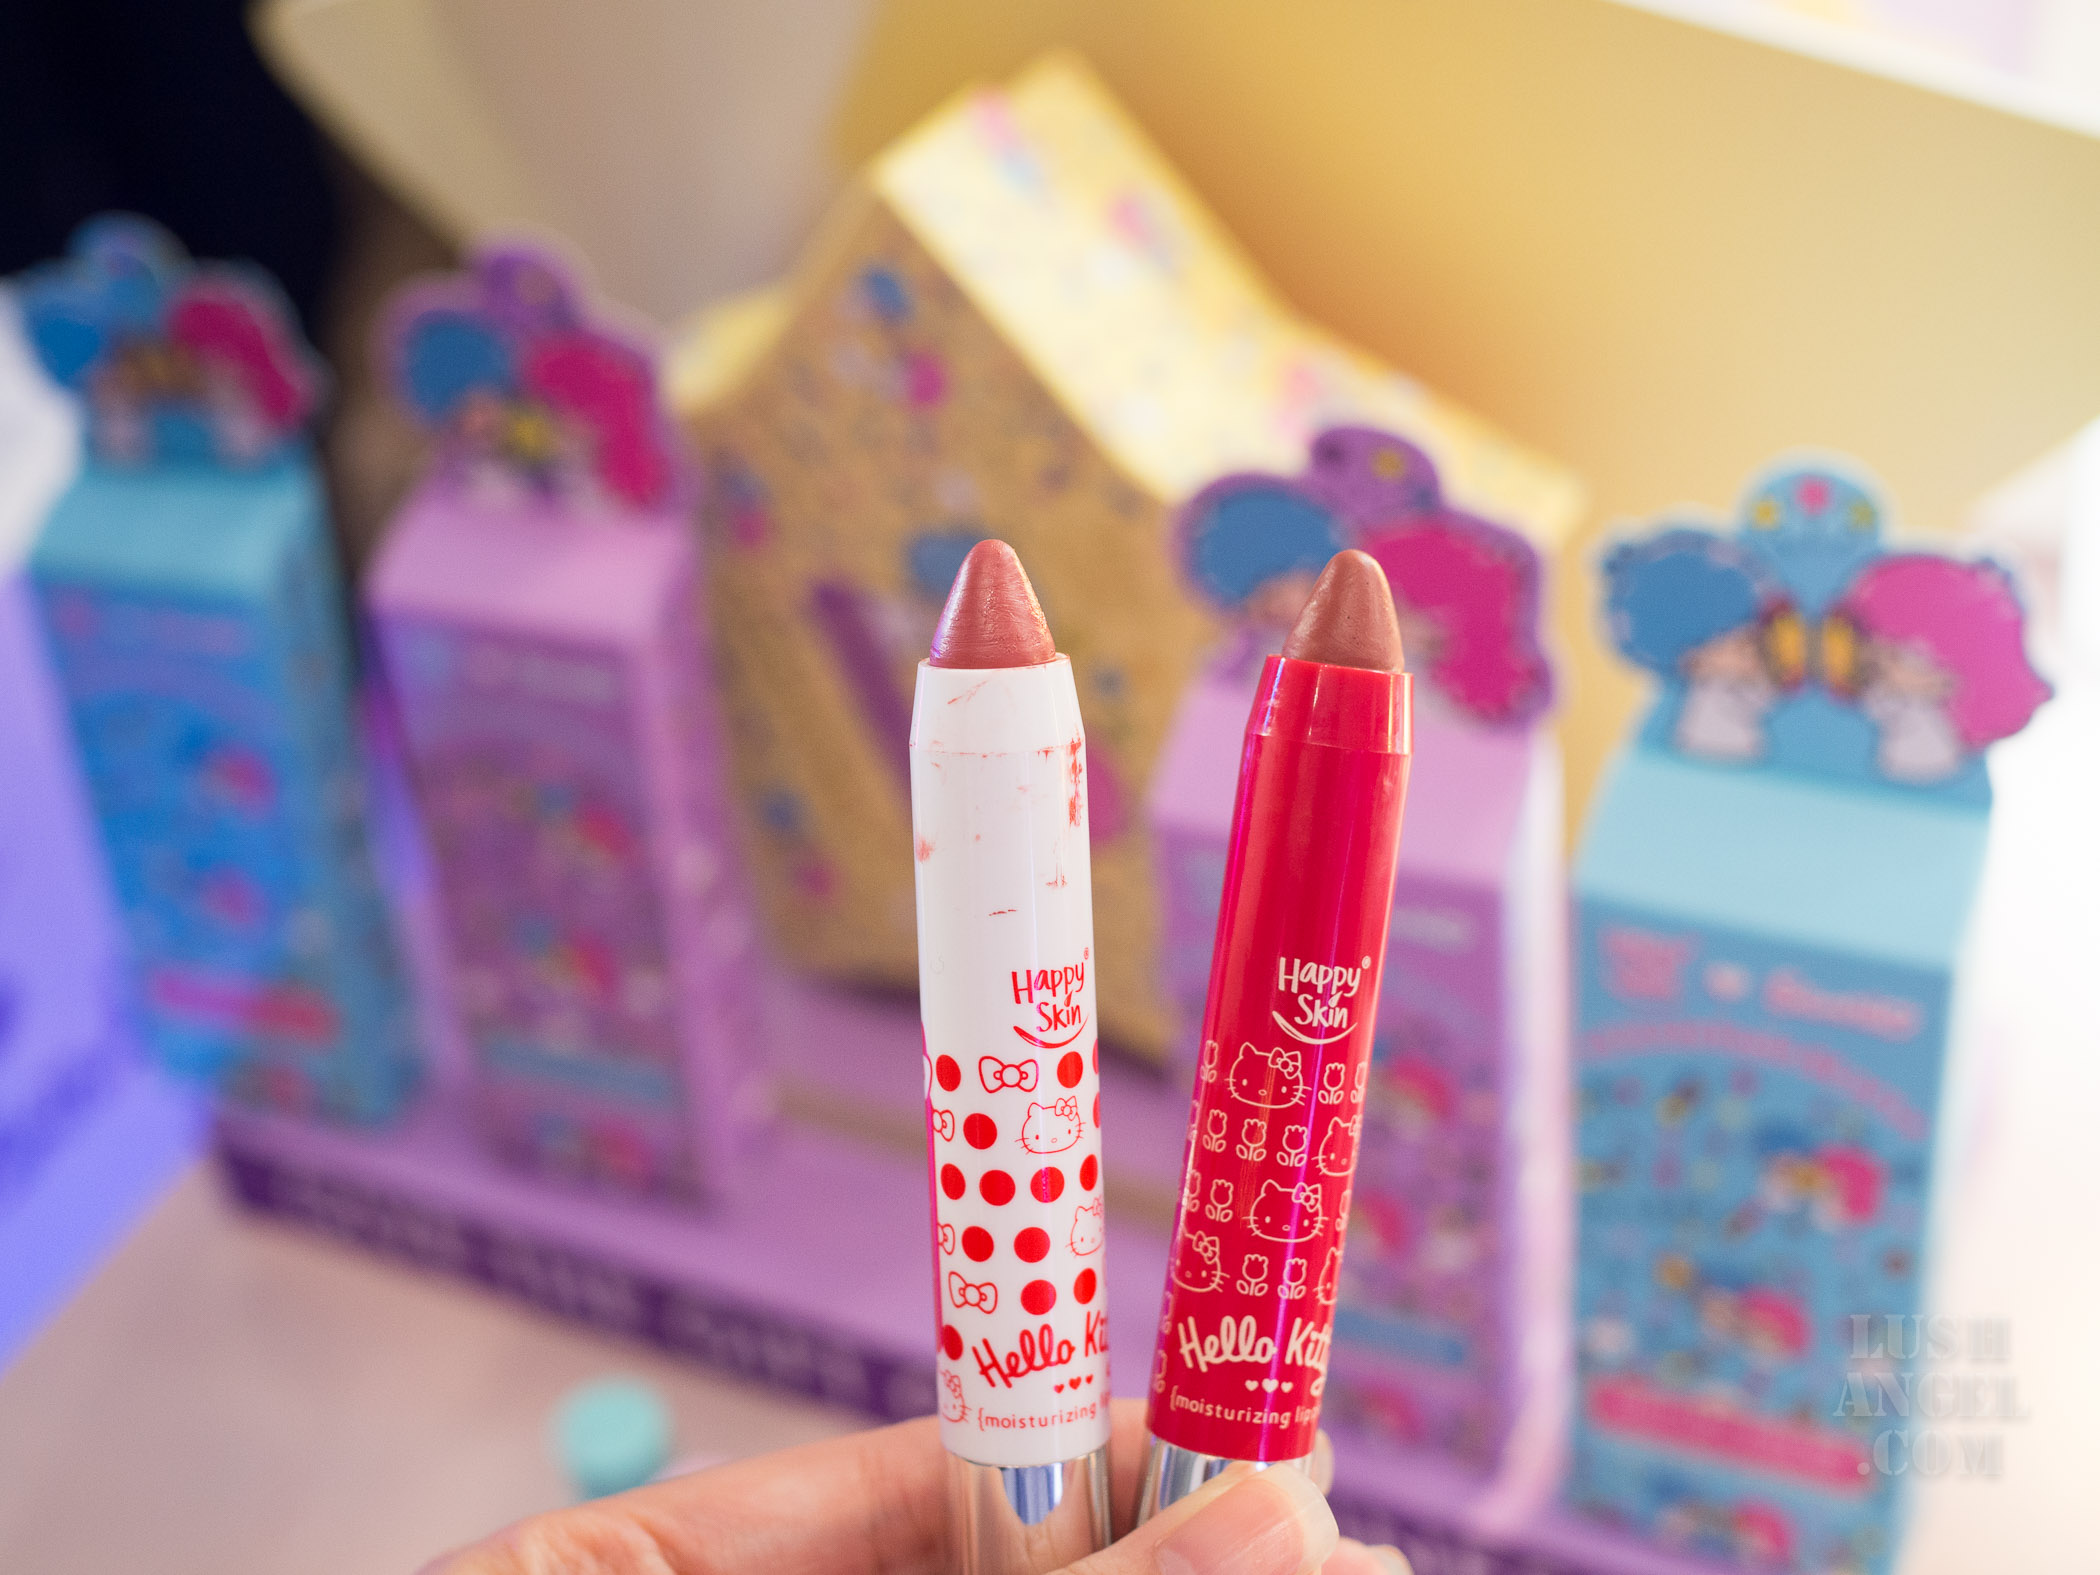 happy-skin-hello-kitty-lipstick